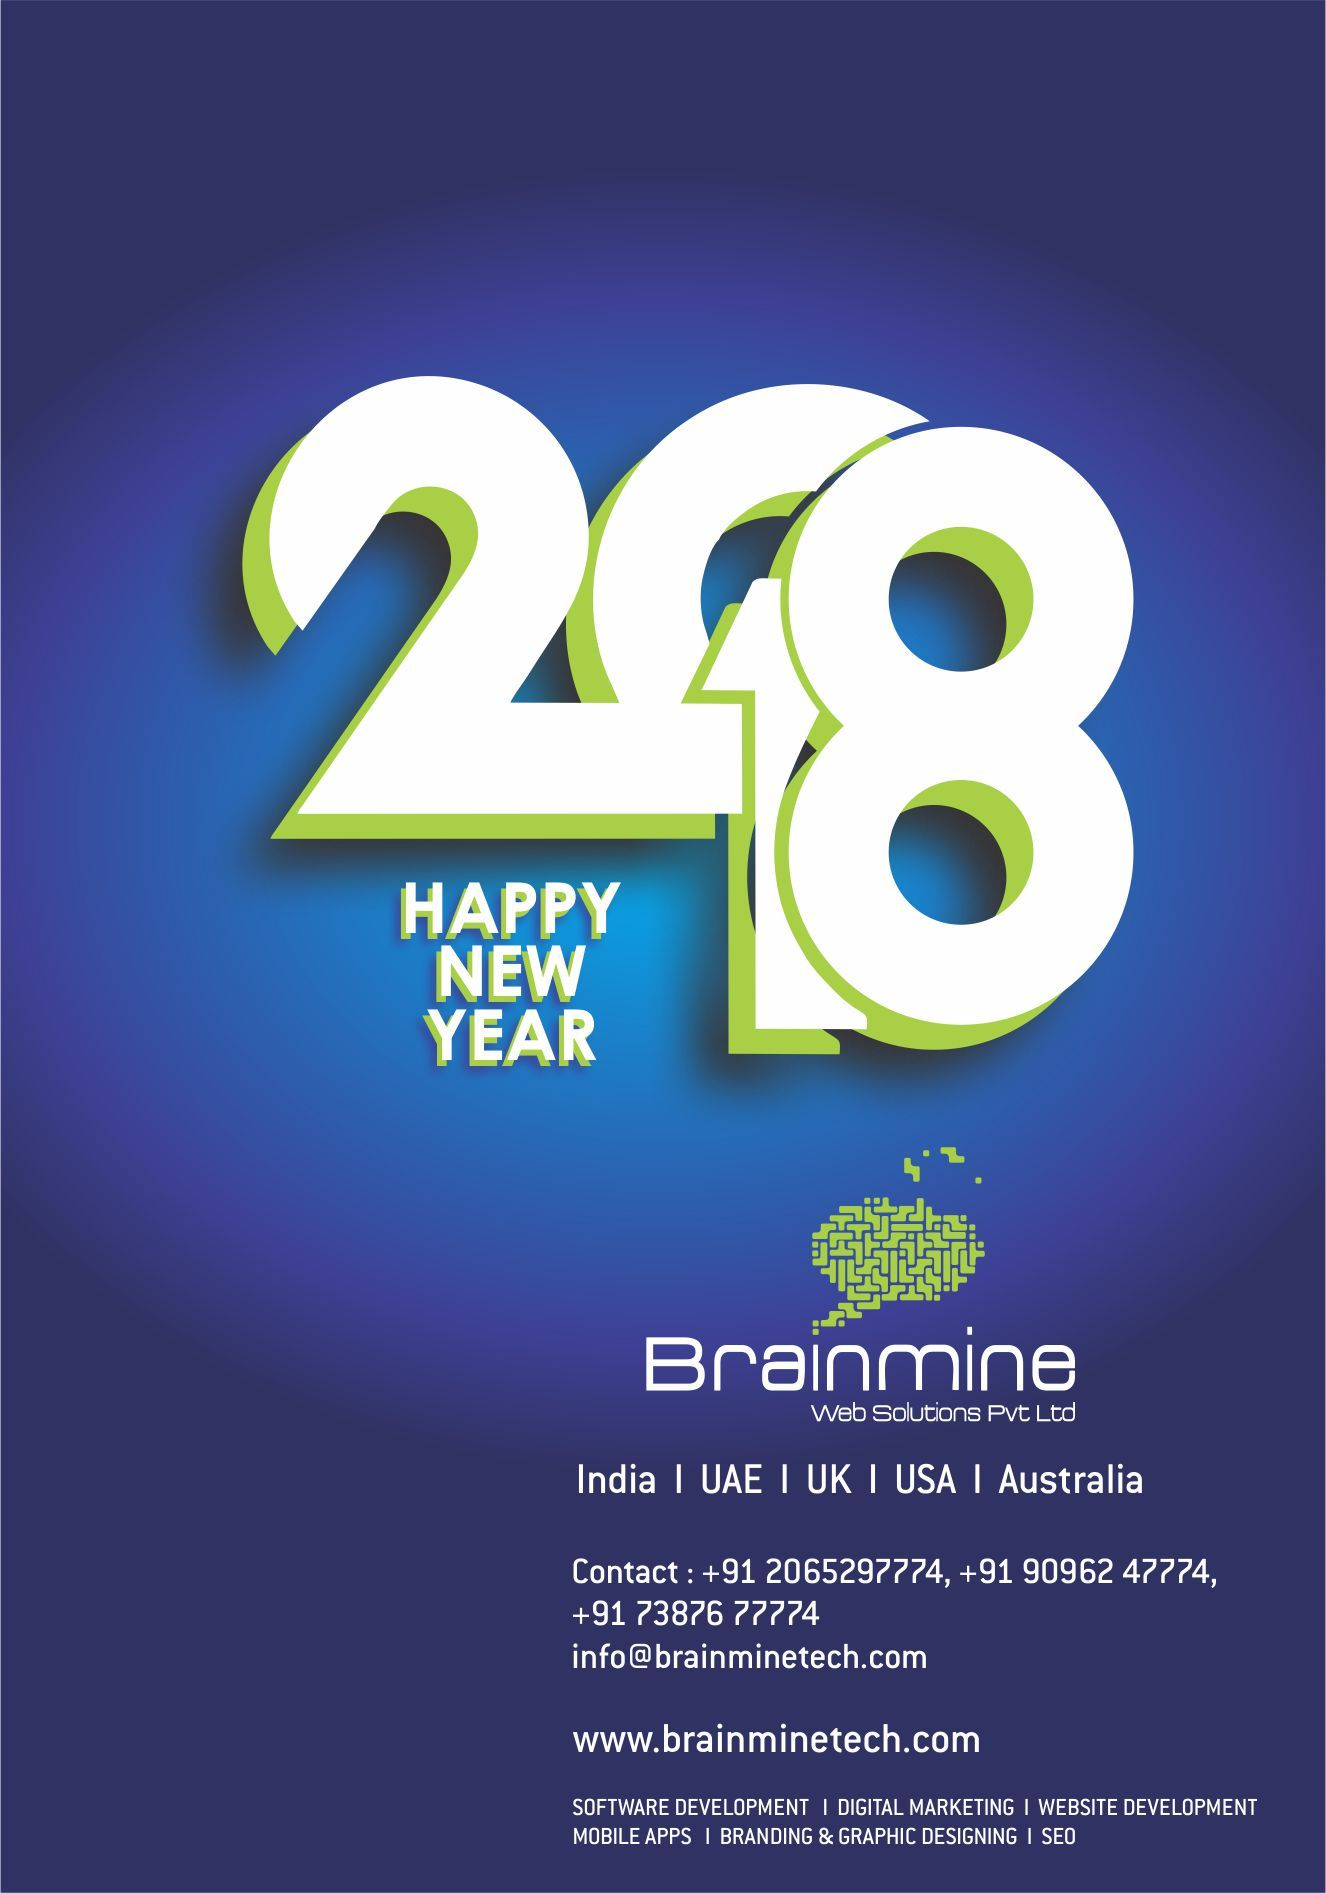 Brainmine Wishes You A Happy & Prosperous New Year!